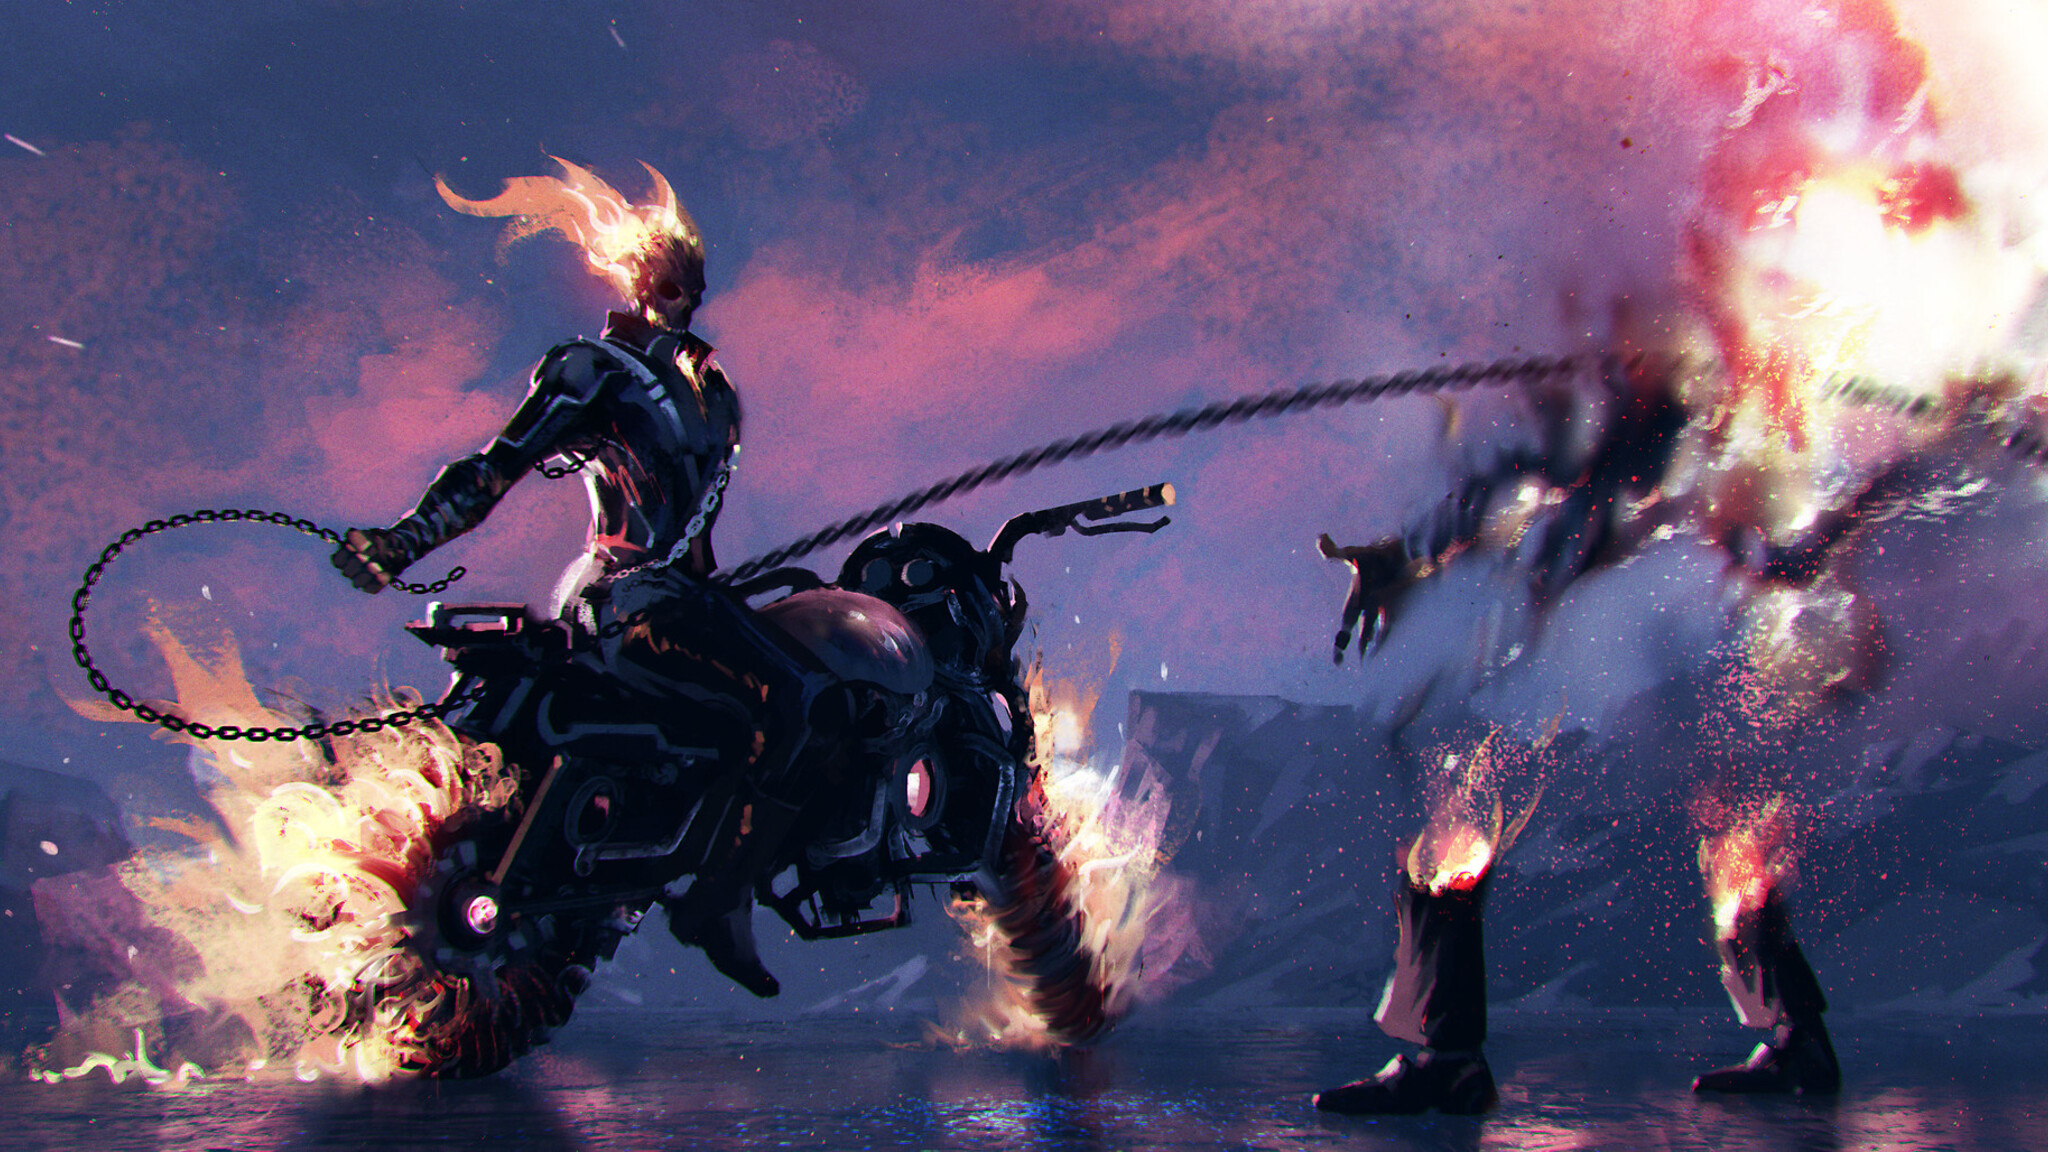 2048x1152 Pubg Bike Rider 4k 2048x1152 Resolution Hd 4k: 2048x1152 Ghost Rider Artwork 2048x1152 Resolution HD 4k